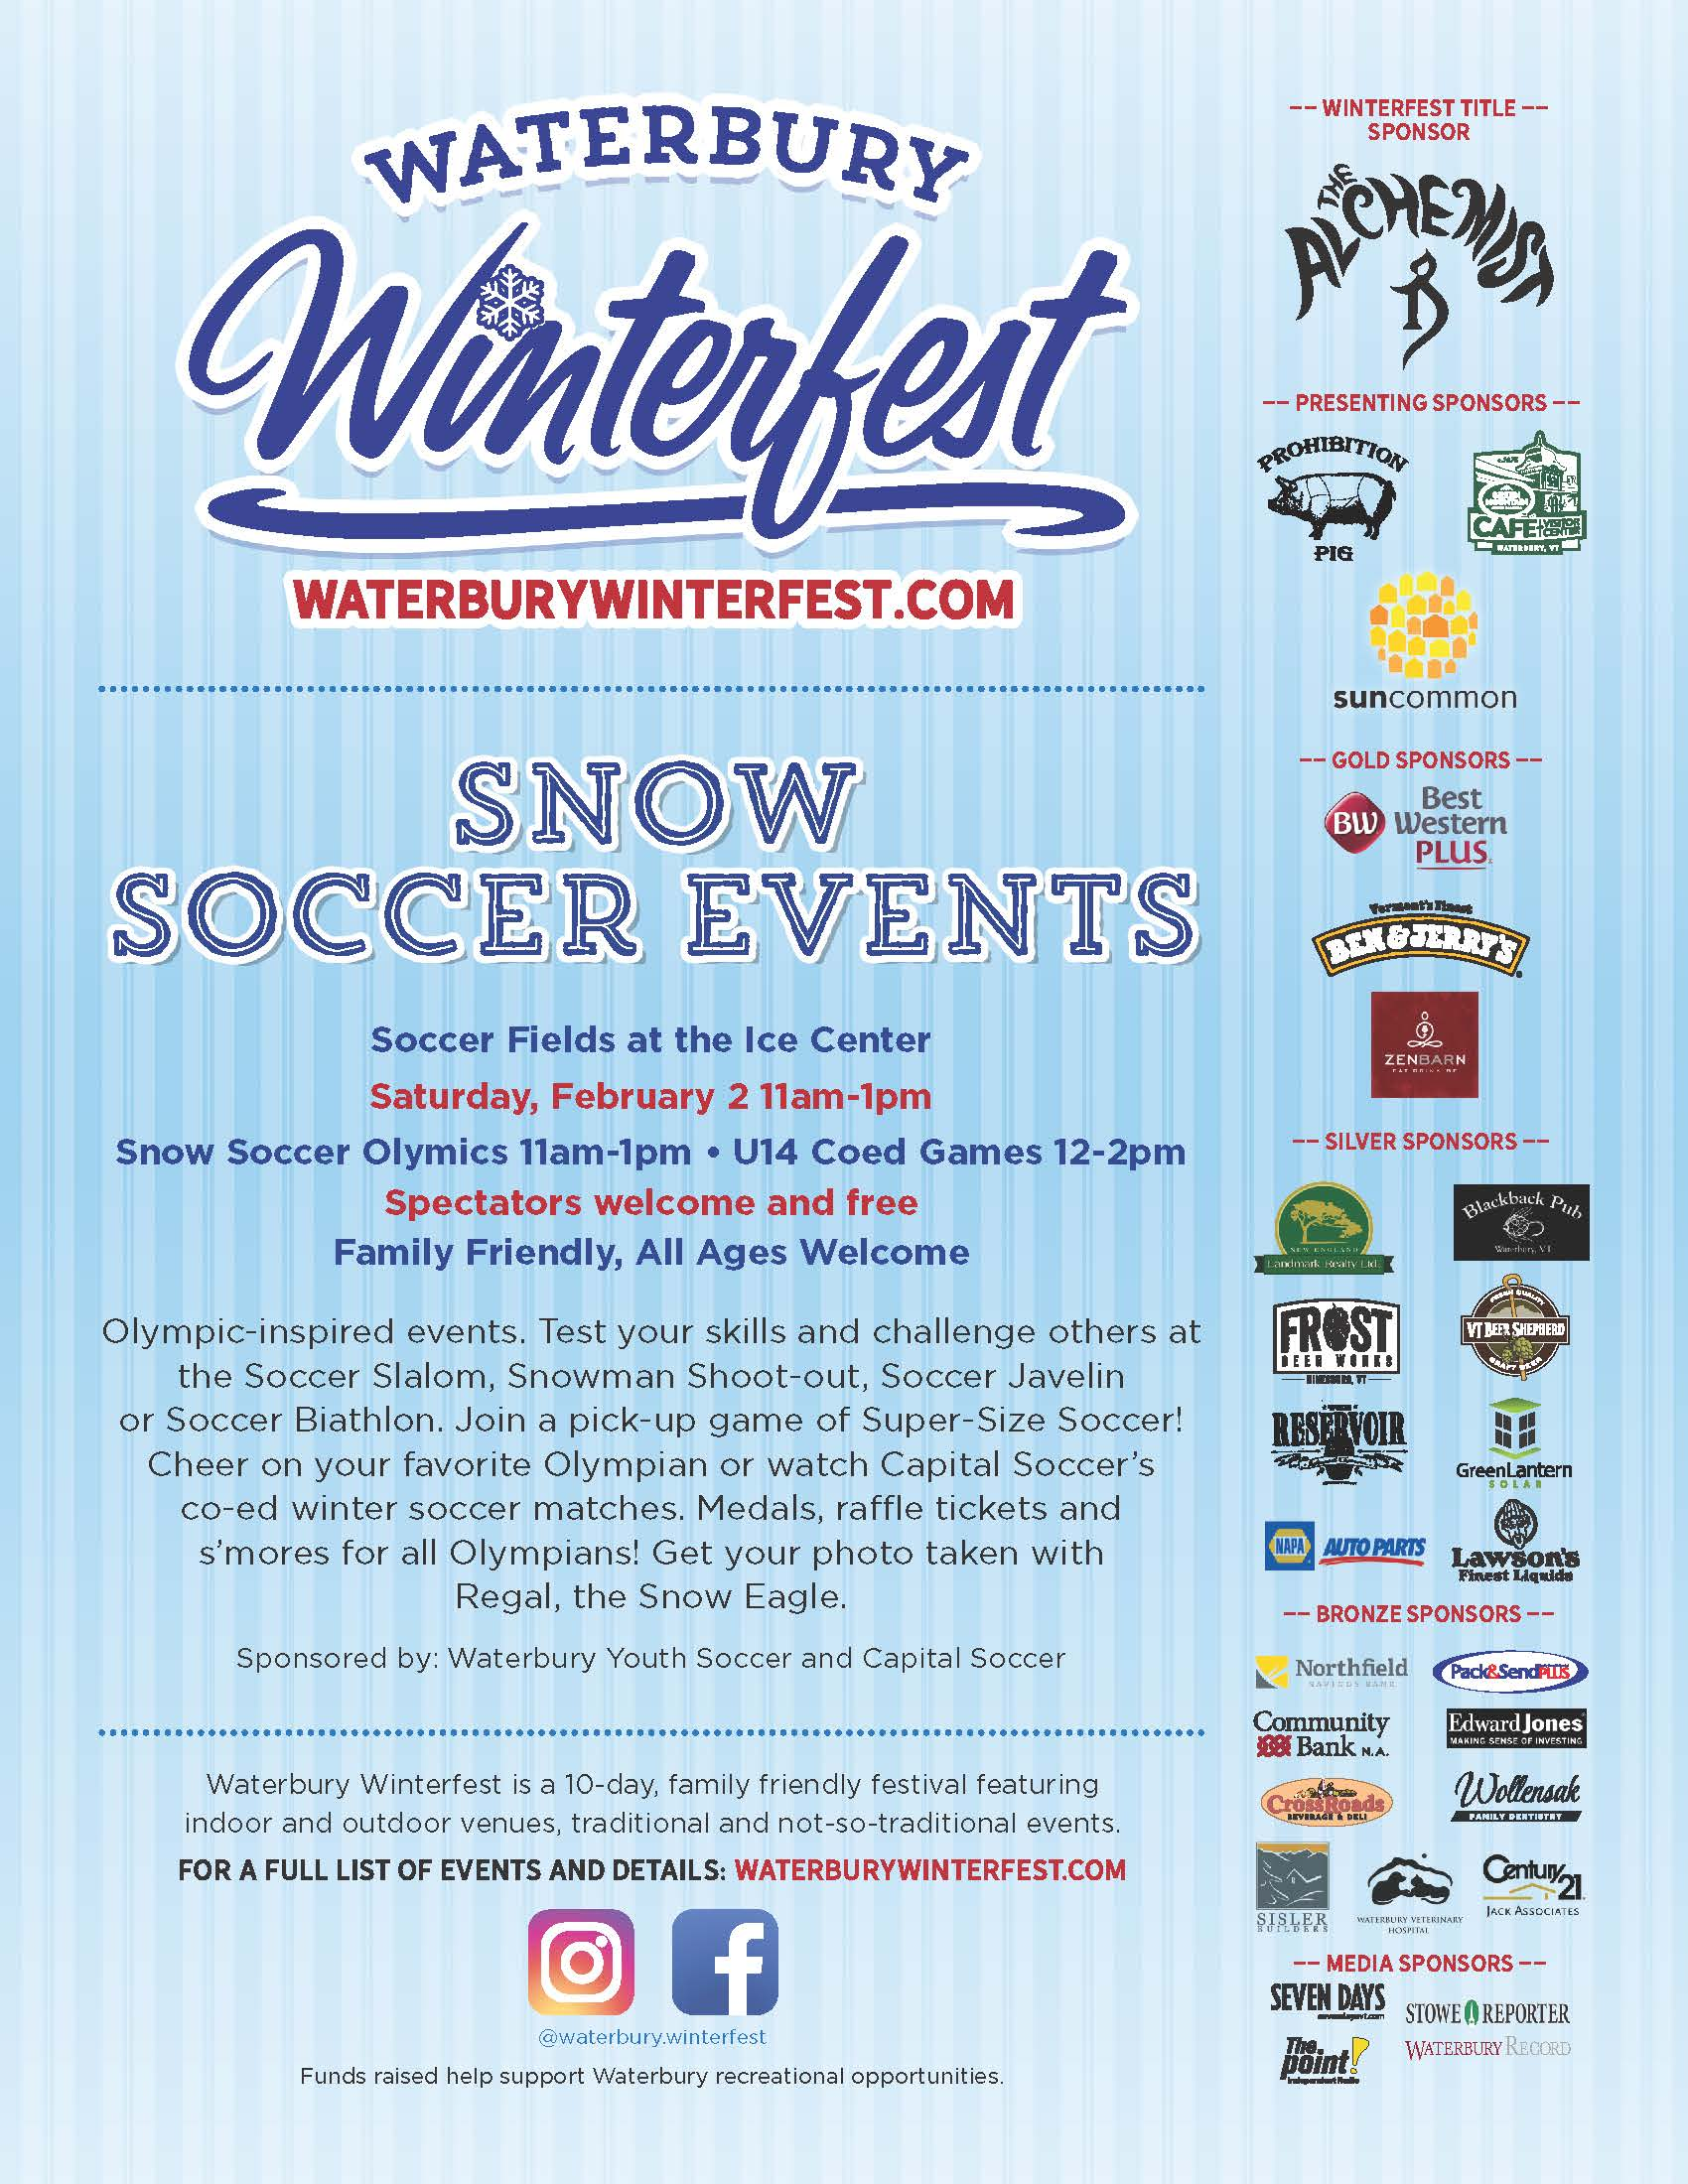 Snow Soccer and Waterbury Winterfest 2019